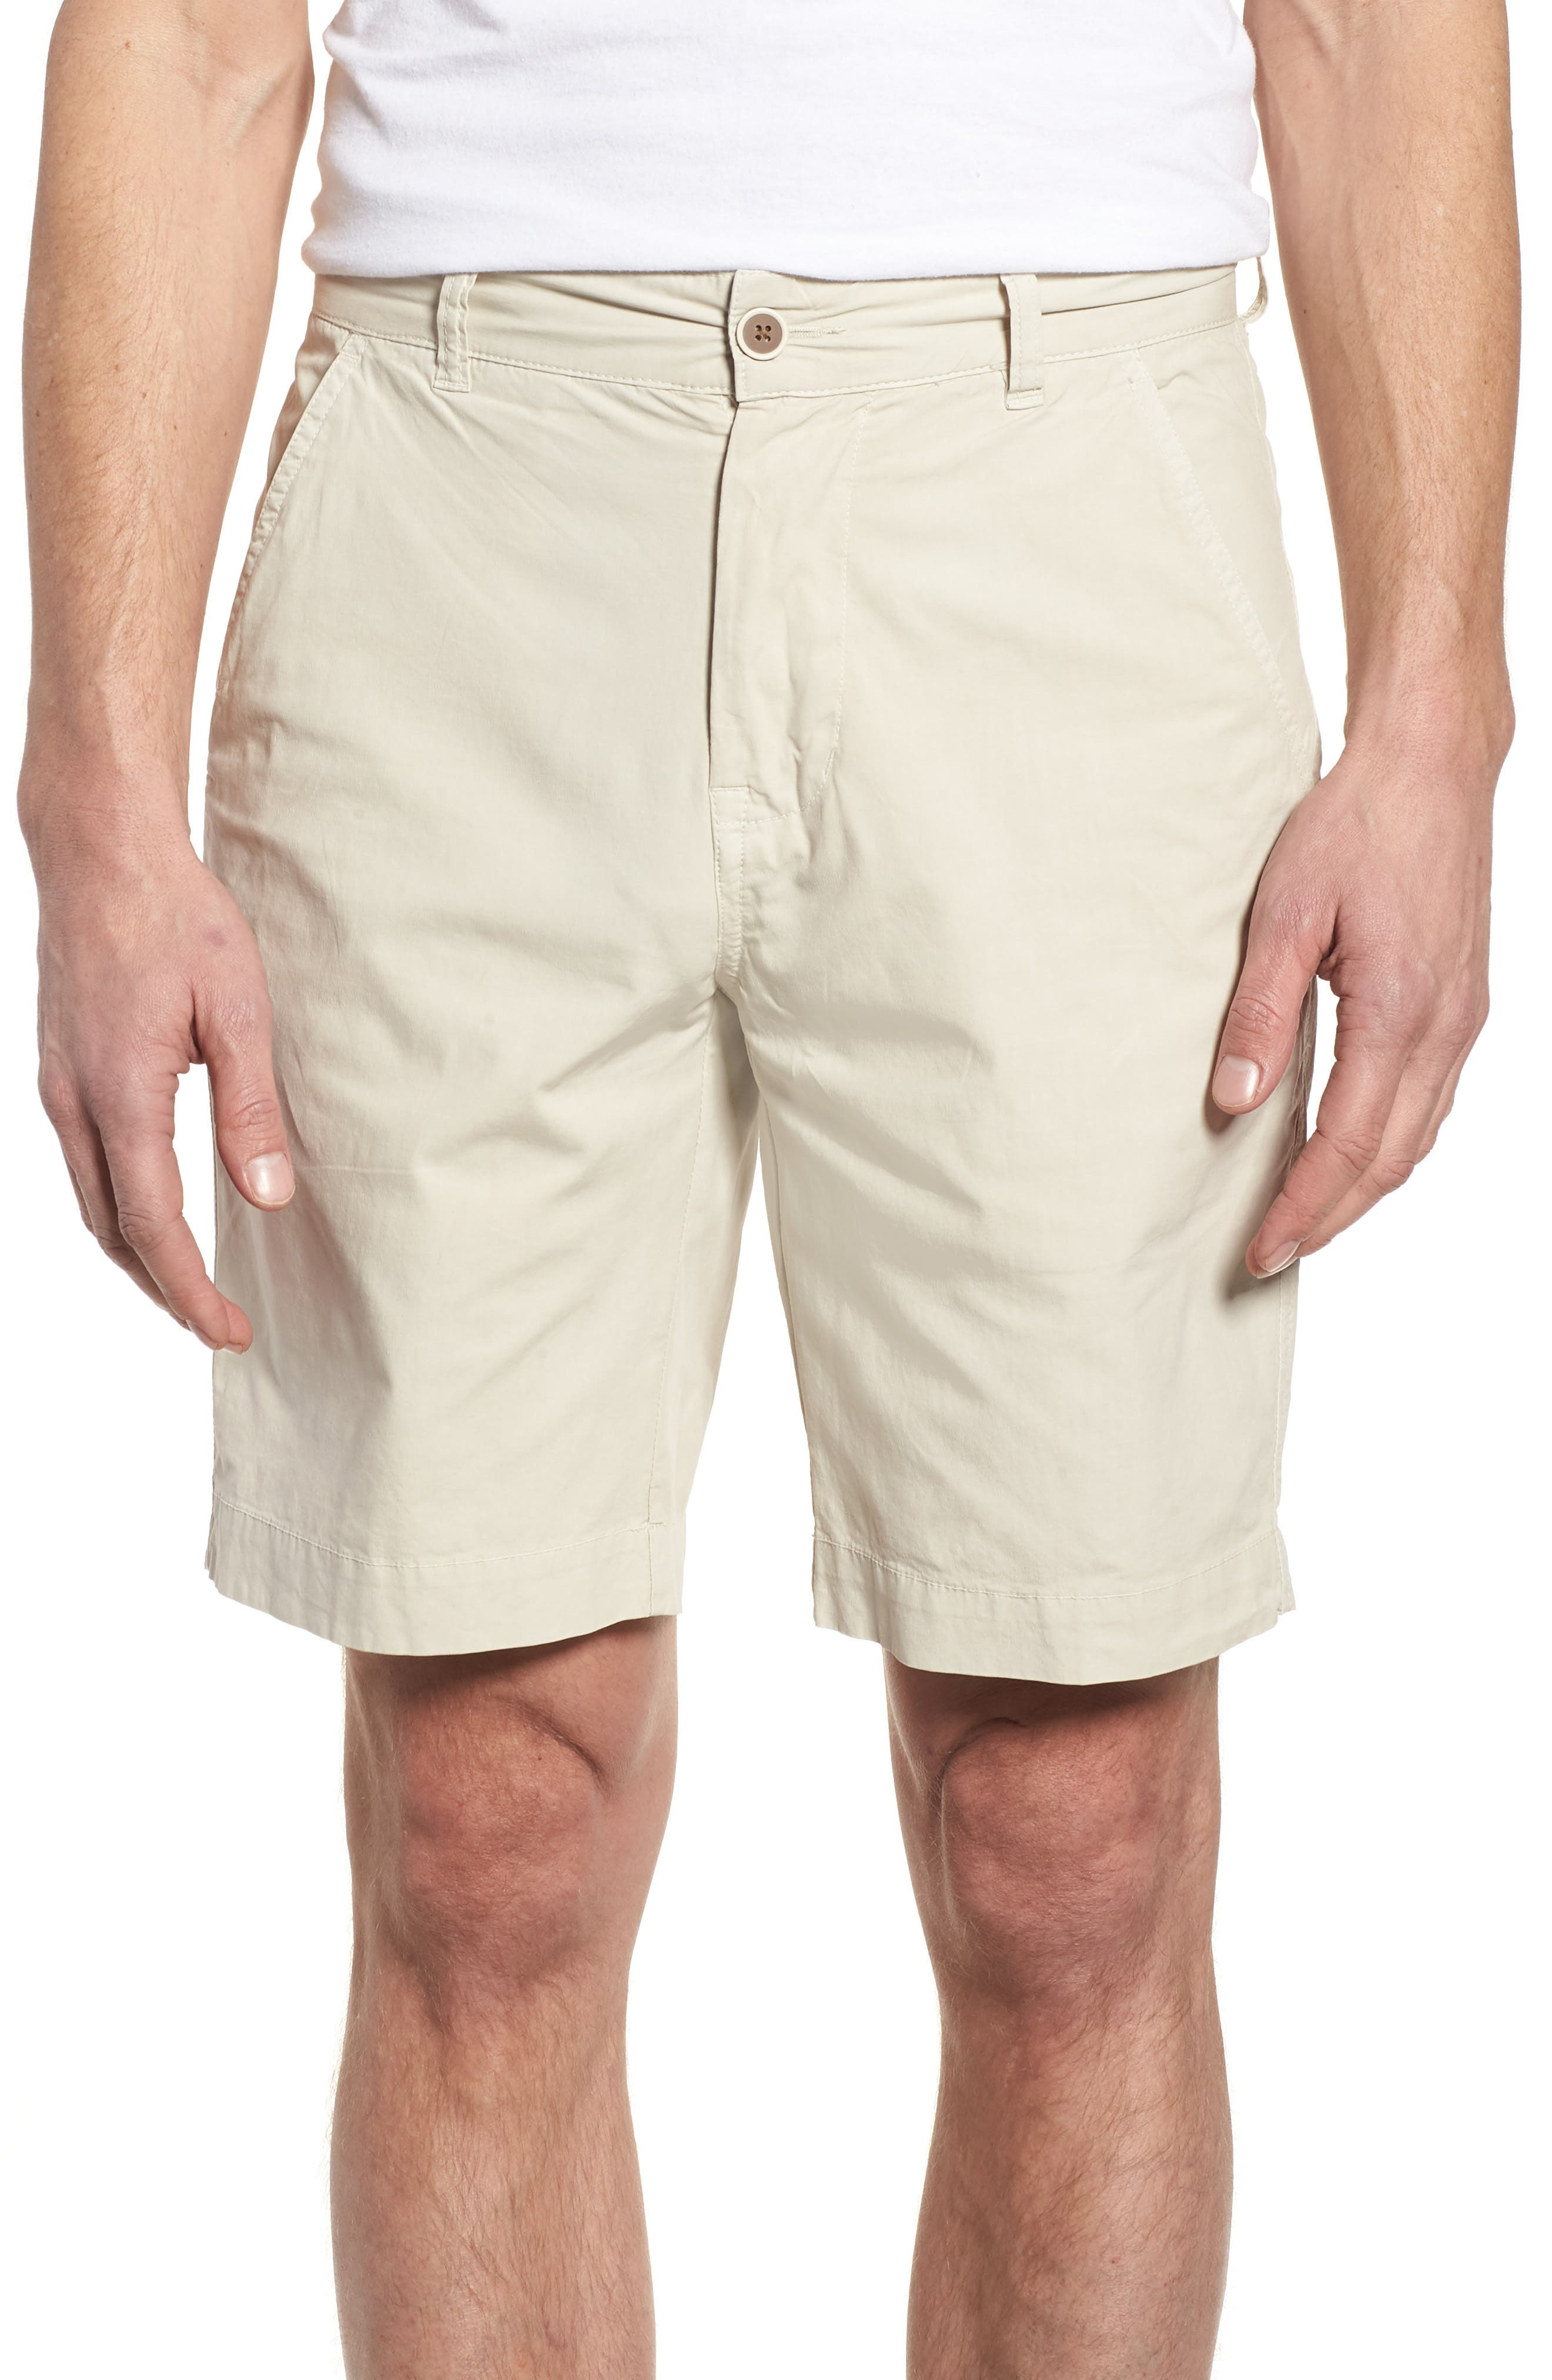 Stretch Poplin Shorts,                             Main thumbnail 1, color,                             020